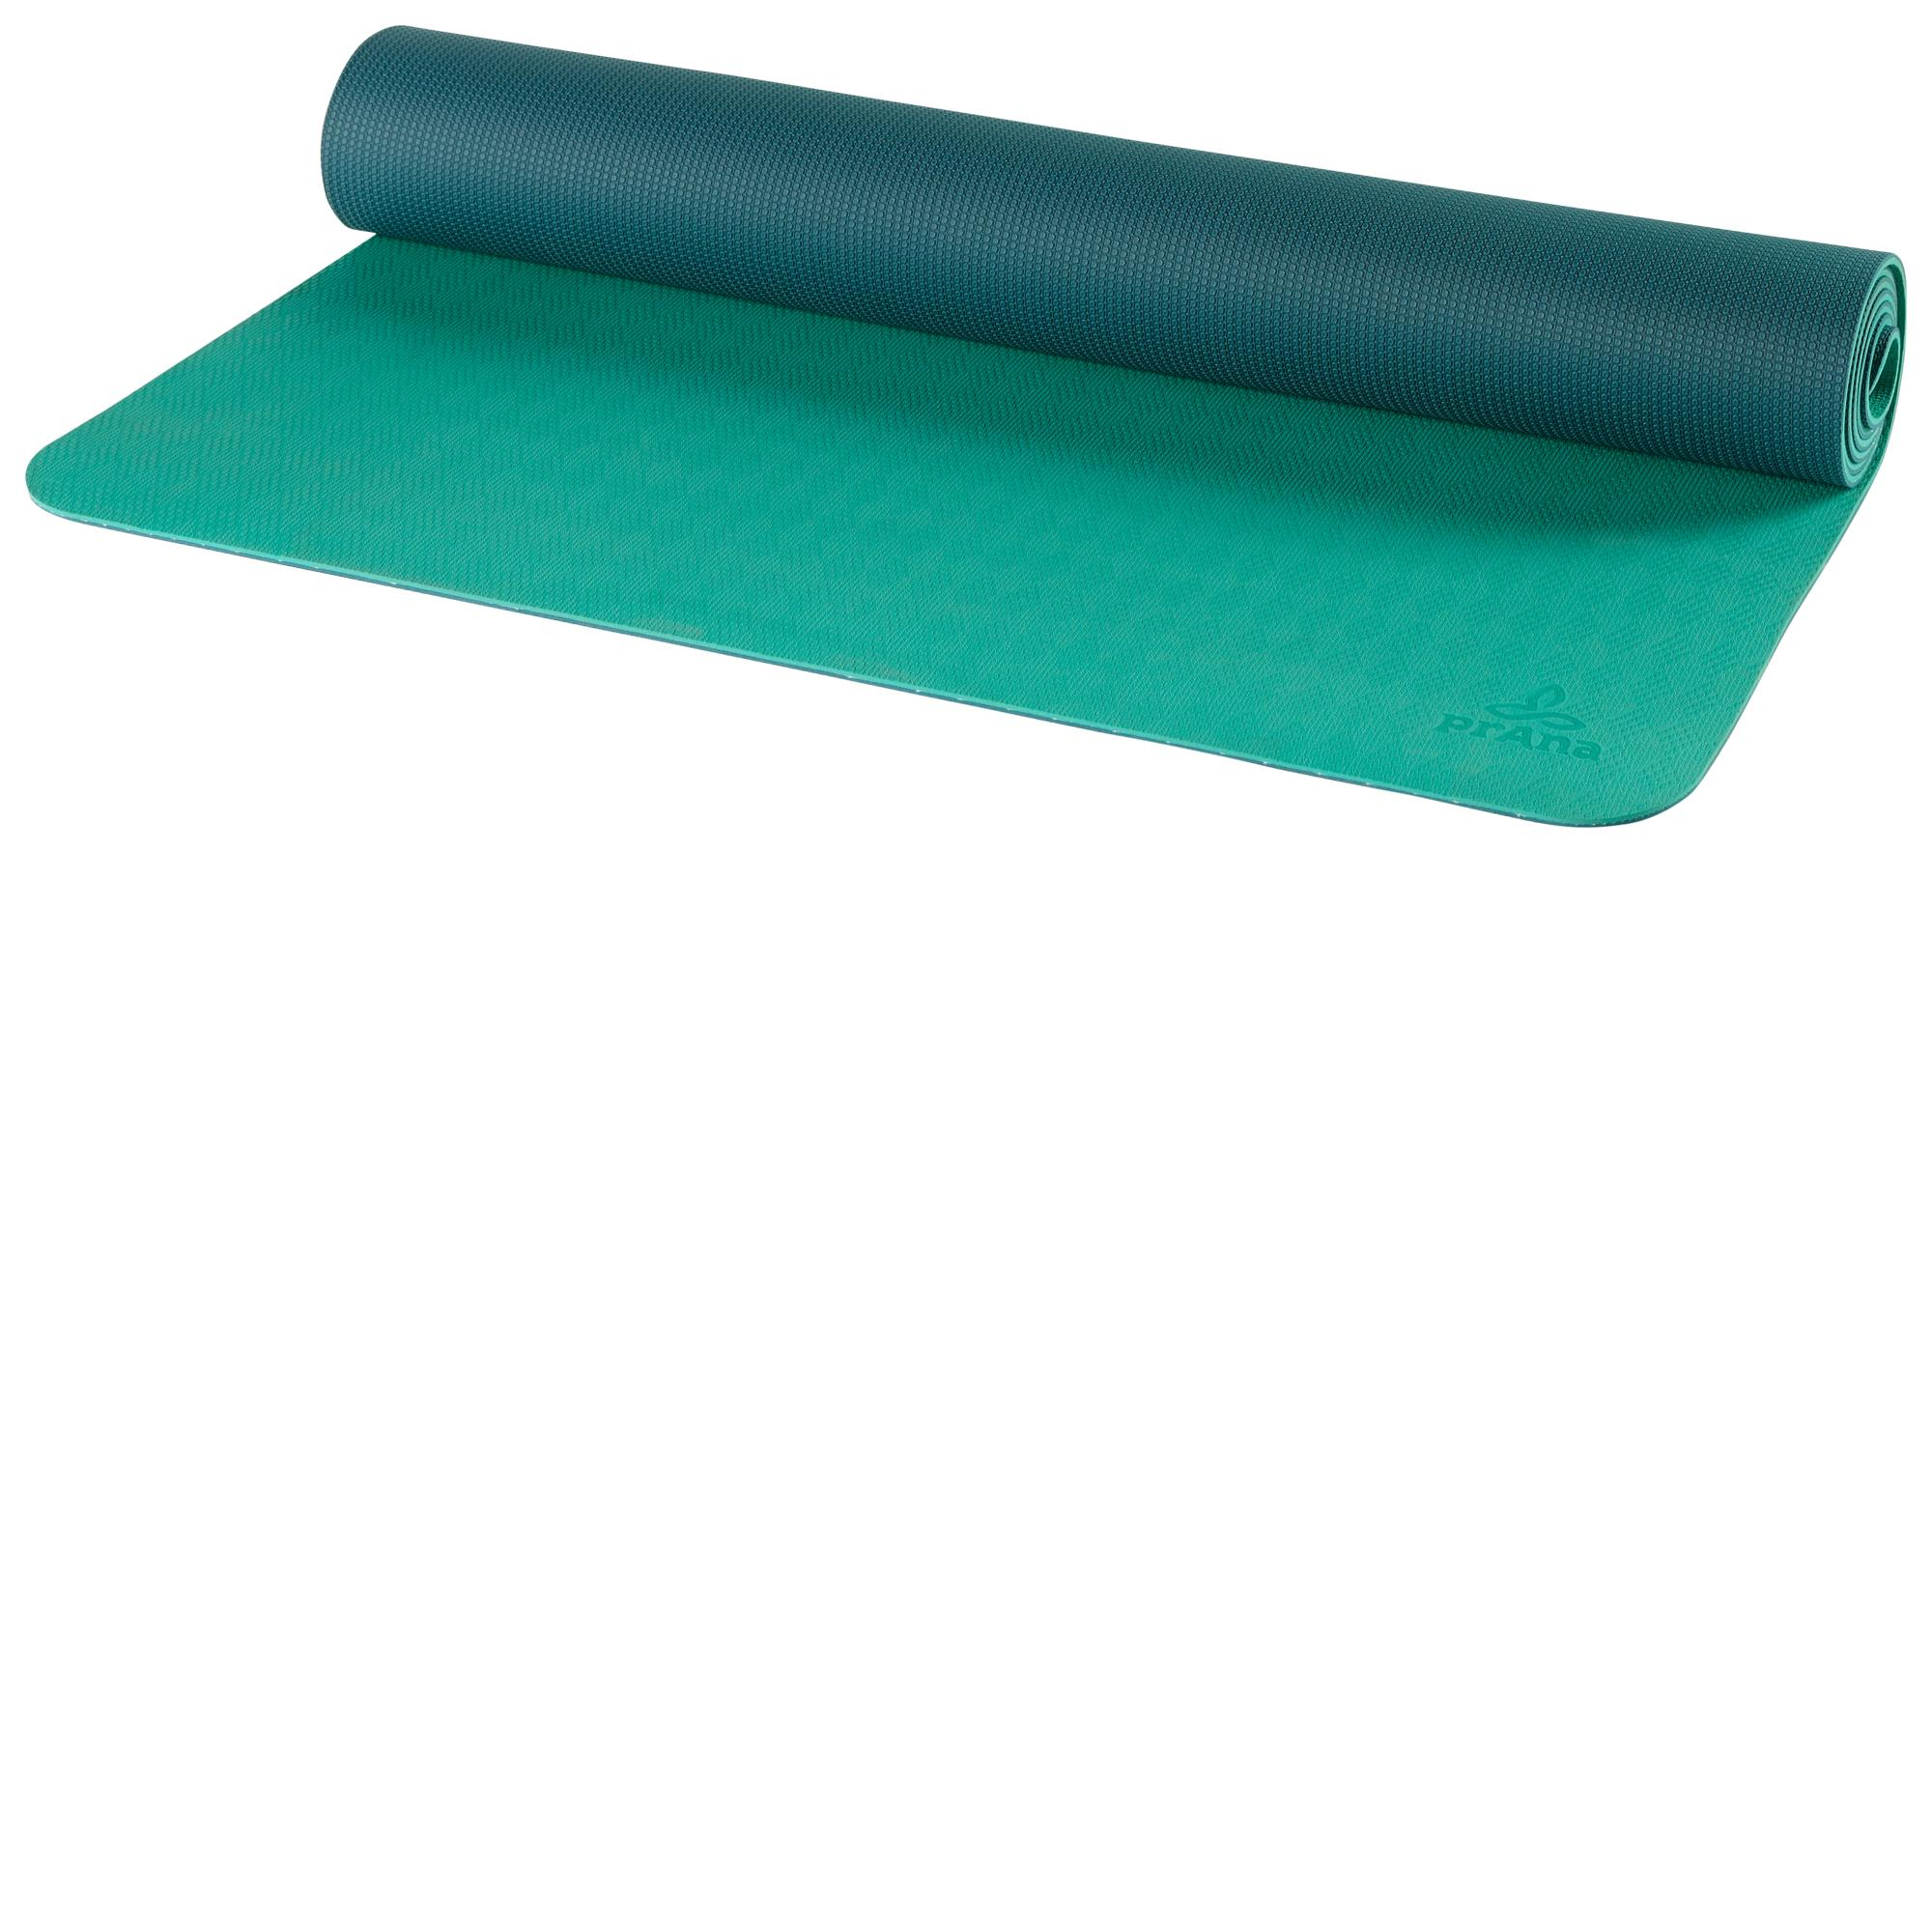 thick for lifetime guarantee jade pro industry harmony mats with last pin black support cushioning professional edition luxuriously yoga mat are the and a limited forever will bar they magic manduka dense setting